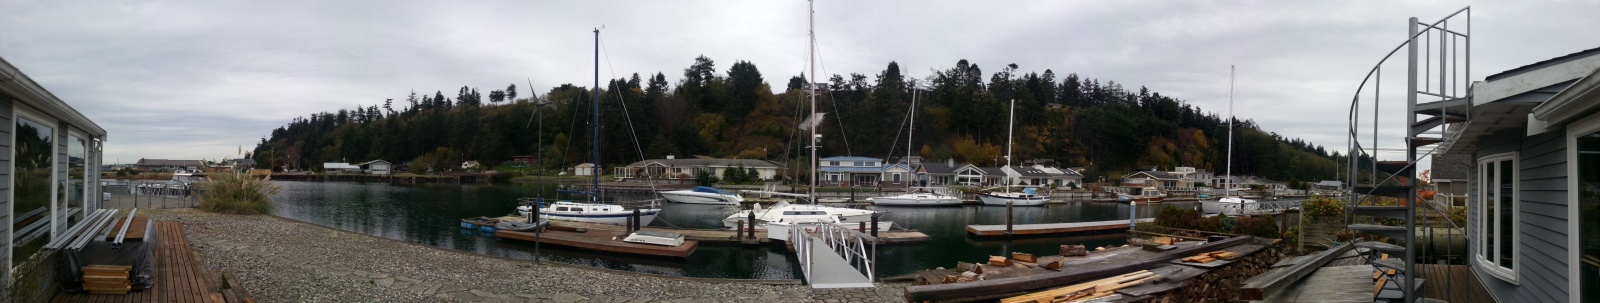 Click image for larger version  Name:Wide Angle Dock.jpg Views:66 Size:187.6 KB ID:99139